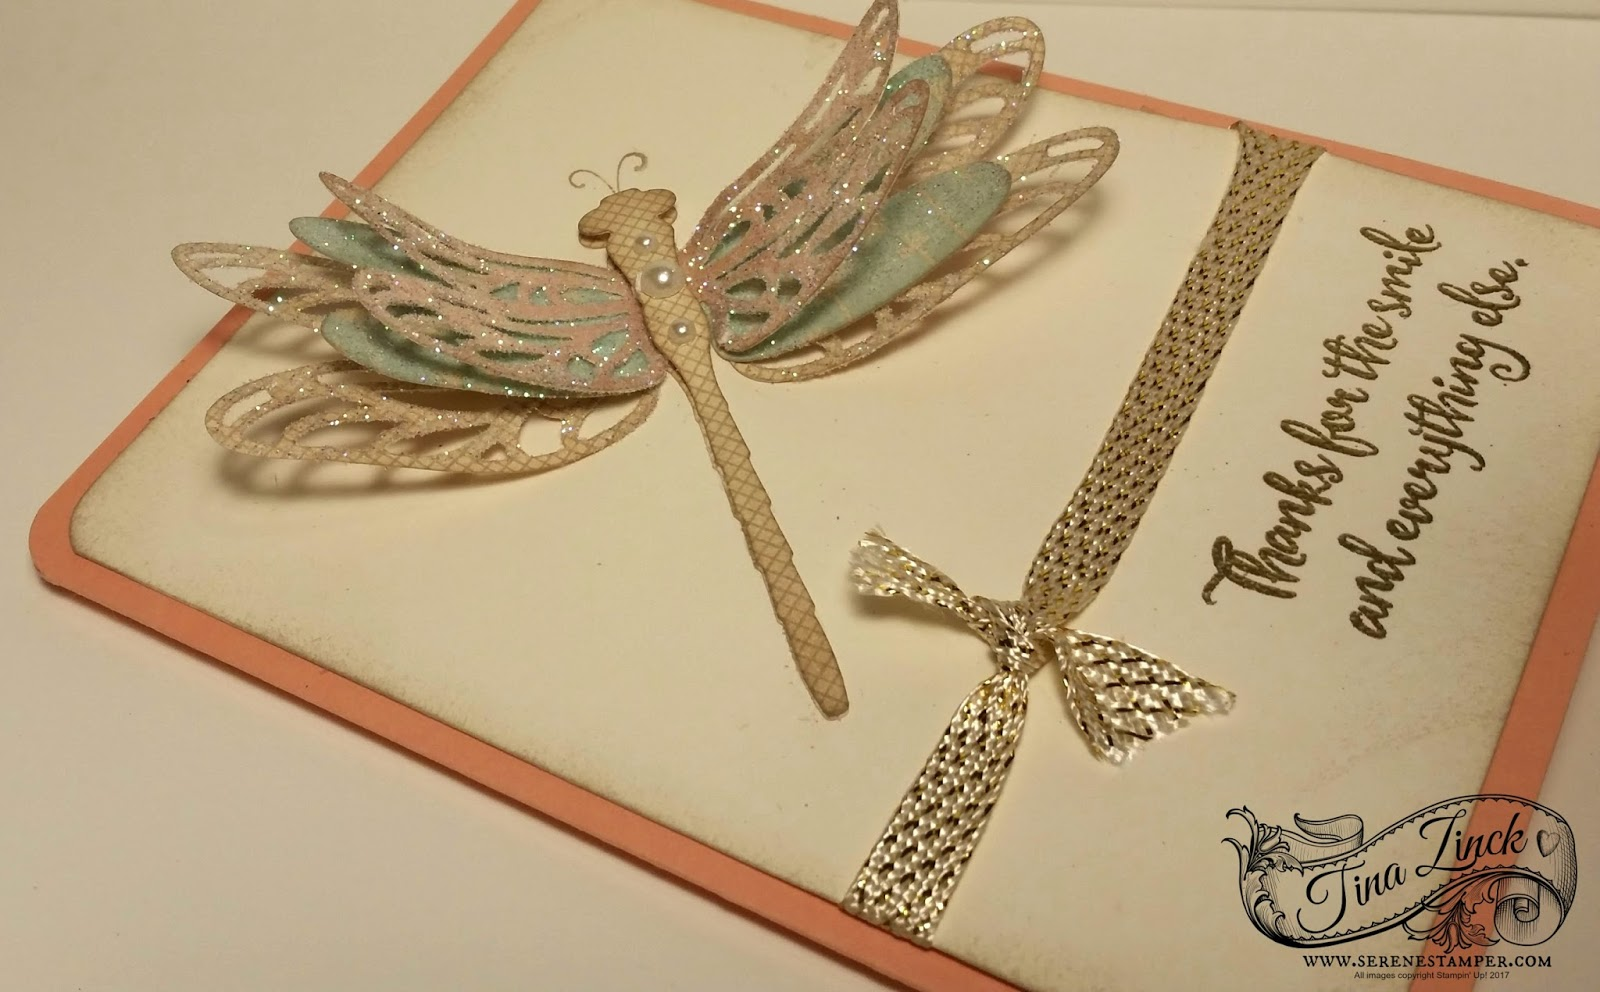 The Serene Stamper: Dragonfly Dreams Card Tutorial